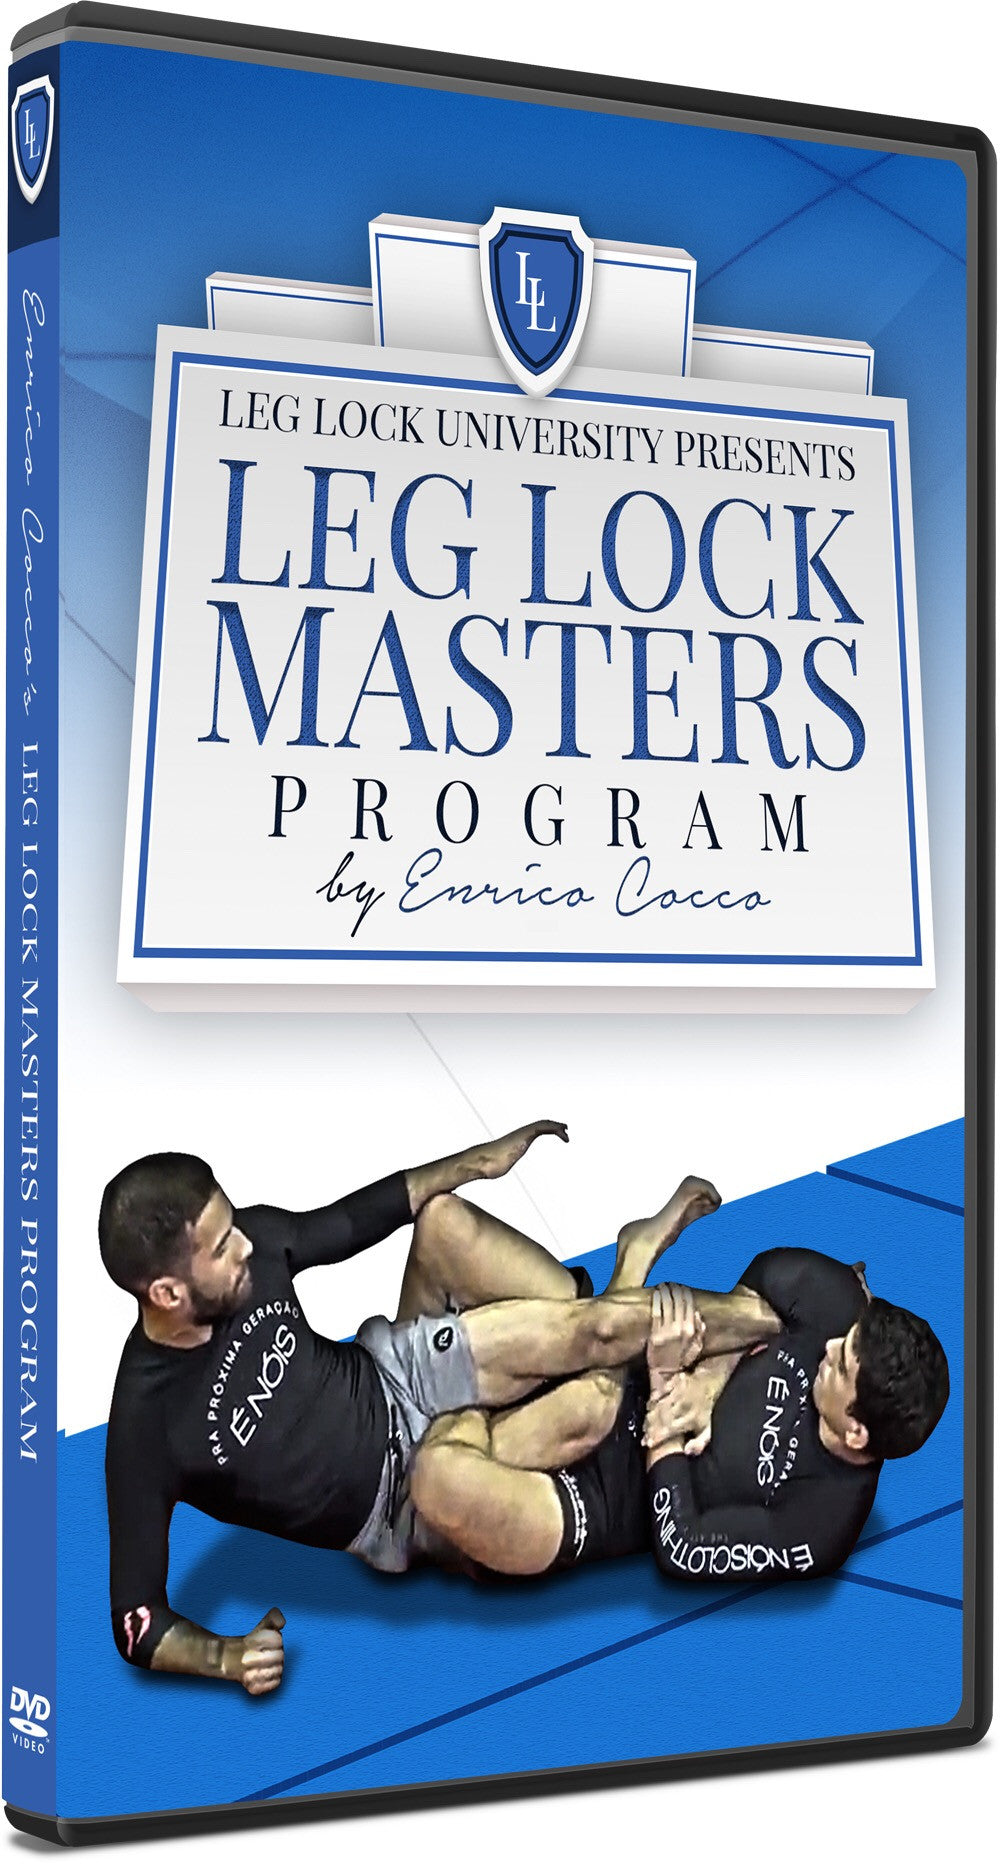 Leg Lock Masters Program 3 DVD Set by Enrico Cocco - Budovideos